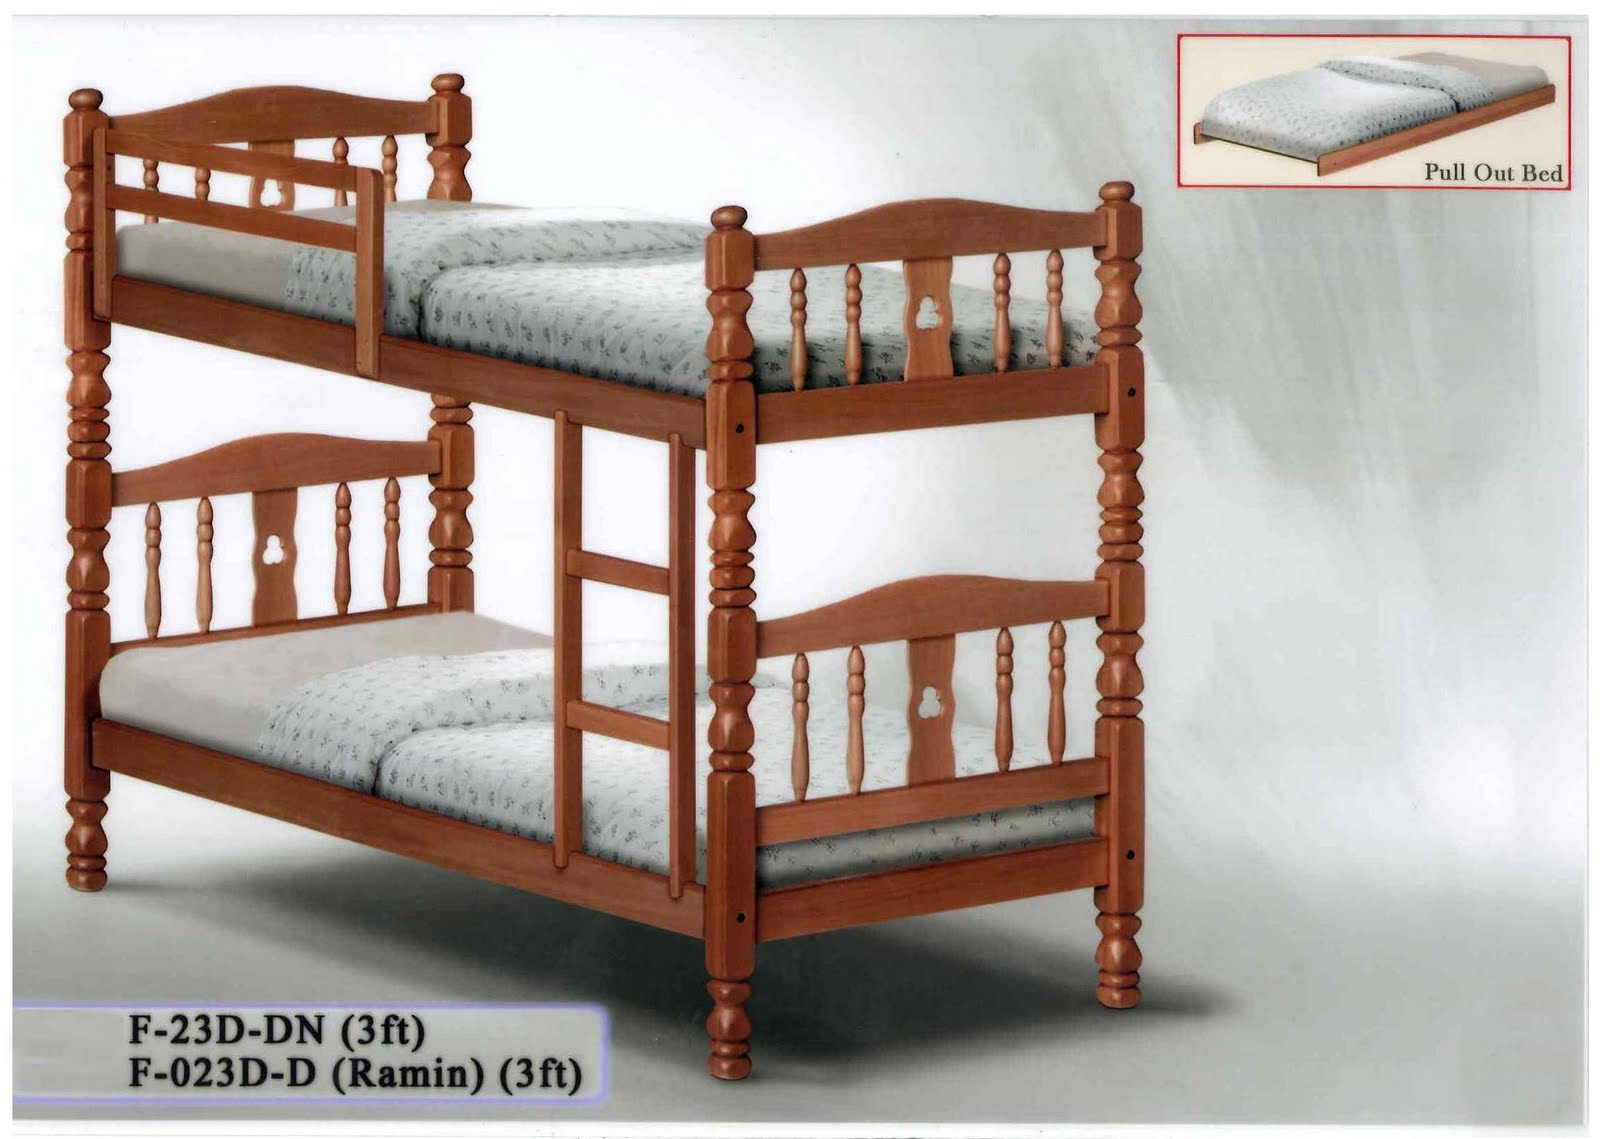 Double Deck Wooden Bed : KAIMAY TRADING PTE LTD (Projects & Wholesaler): Bedframe (Wood)